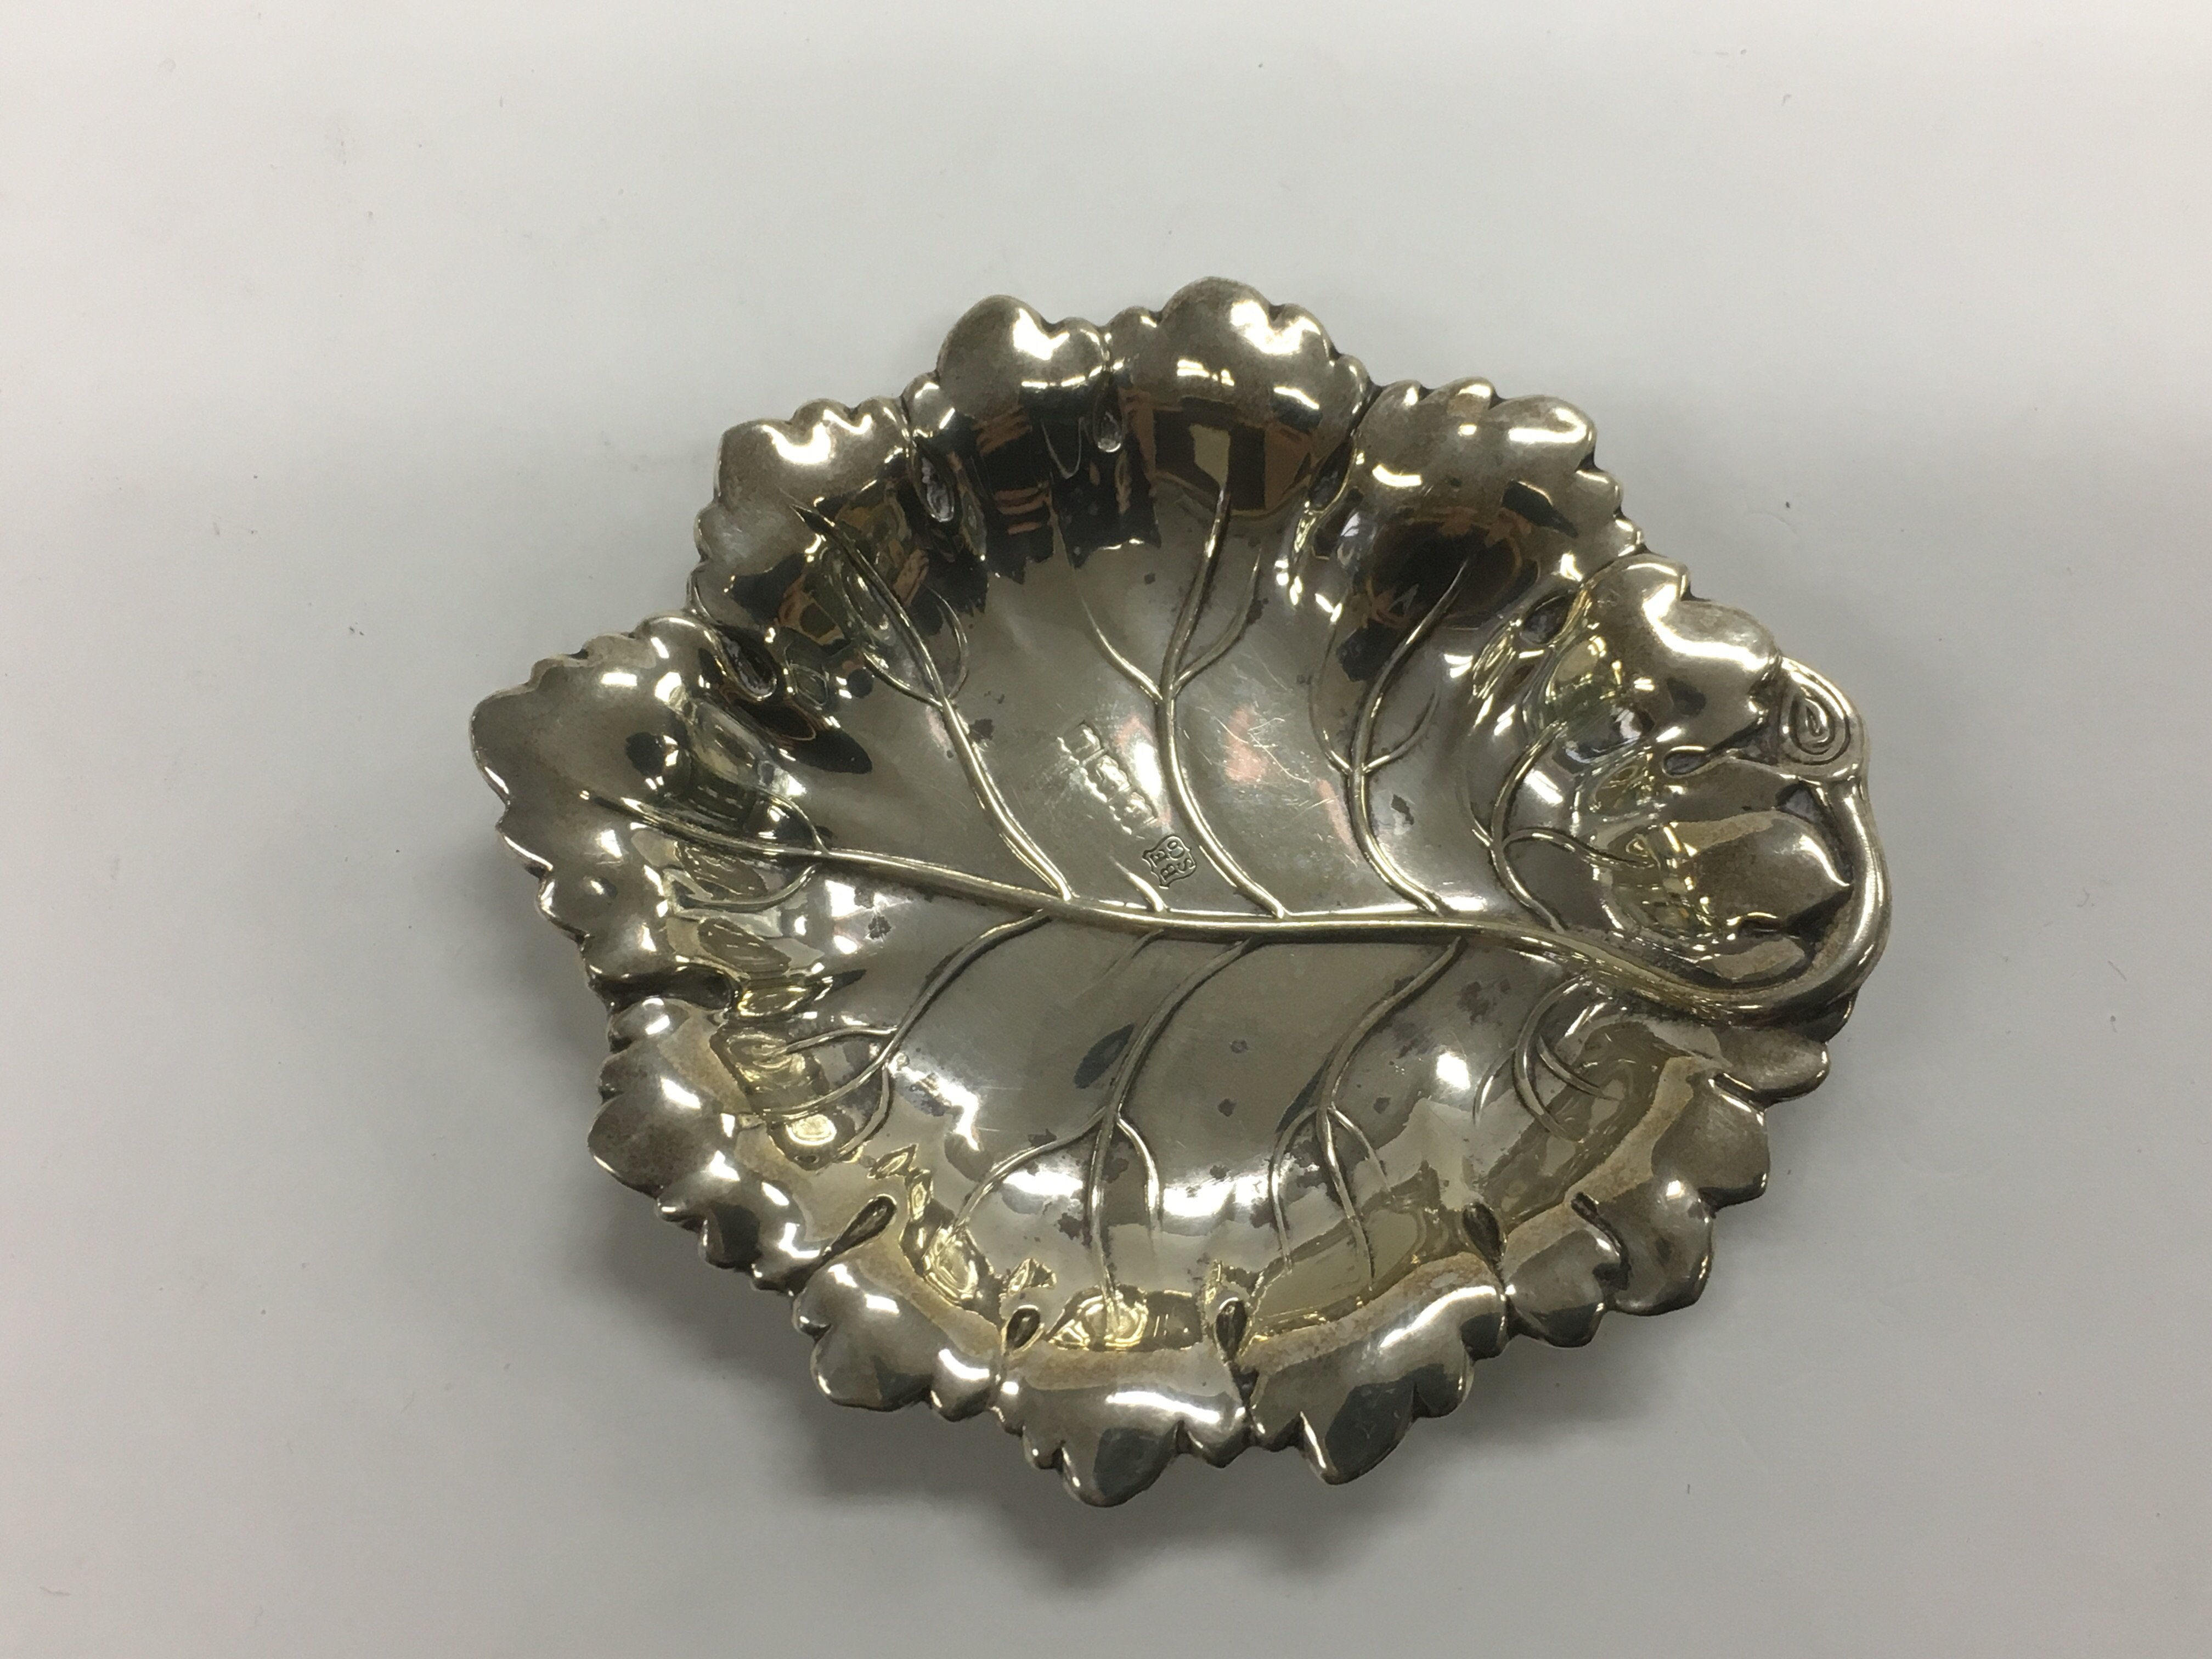 Lot 311 - A small silver dish in the form of a leaf, Birming